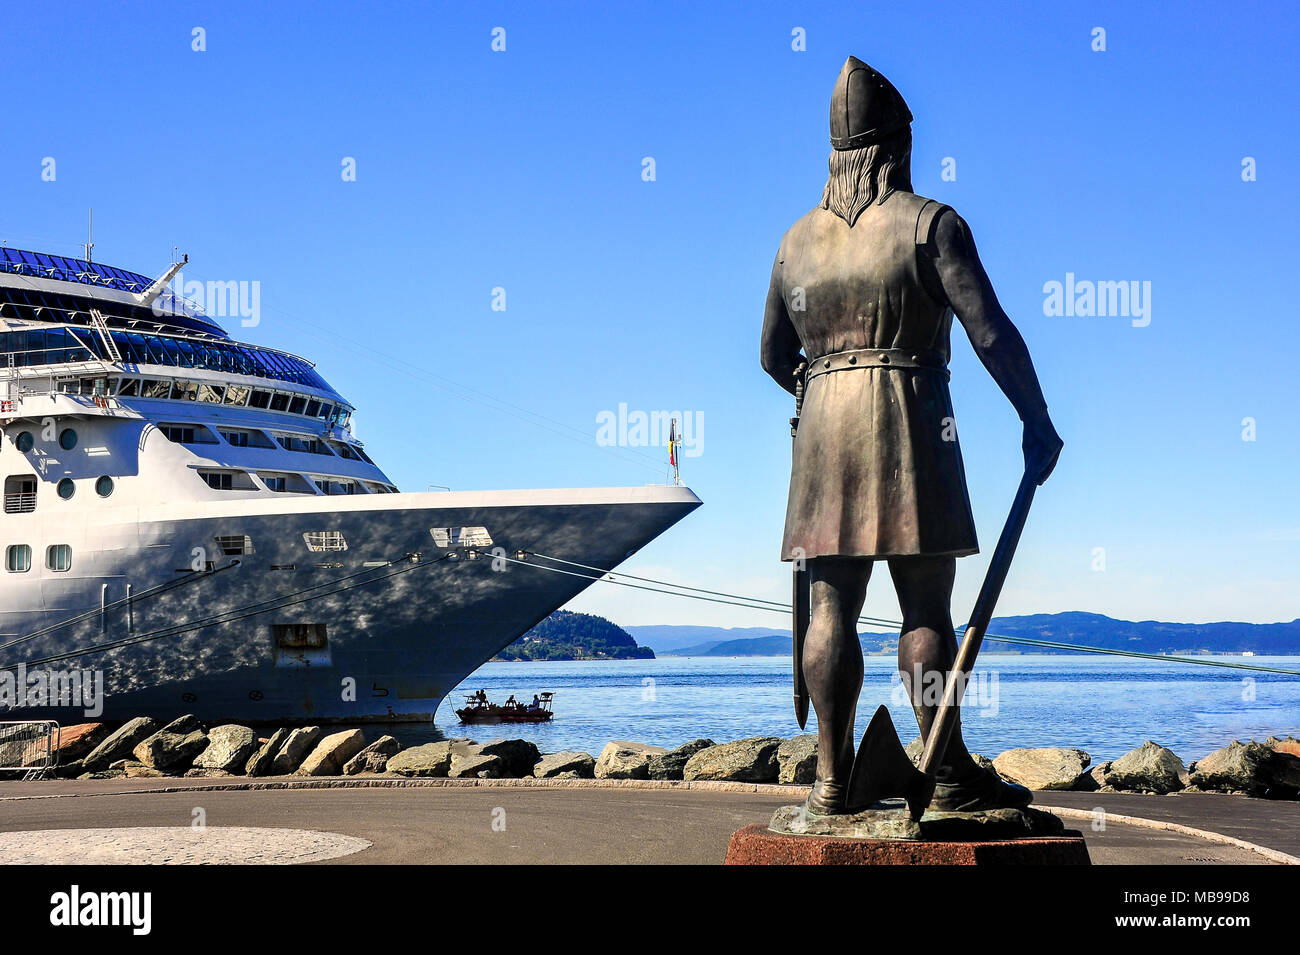 Leiv Erikson statue looks seaward silhouetted against blue sky background. Bronze figure with sword and axe, standing by bow of large cruise liner - Stock Image